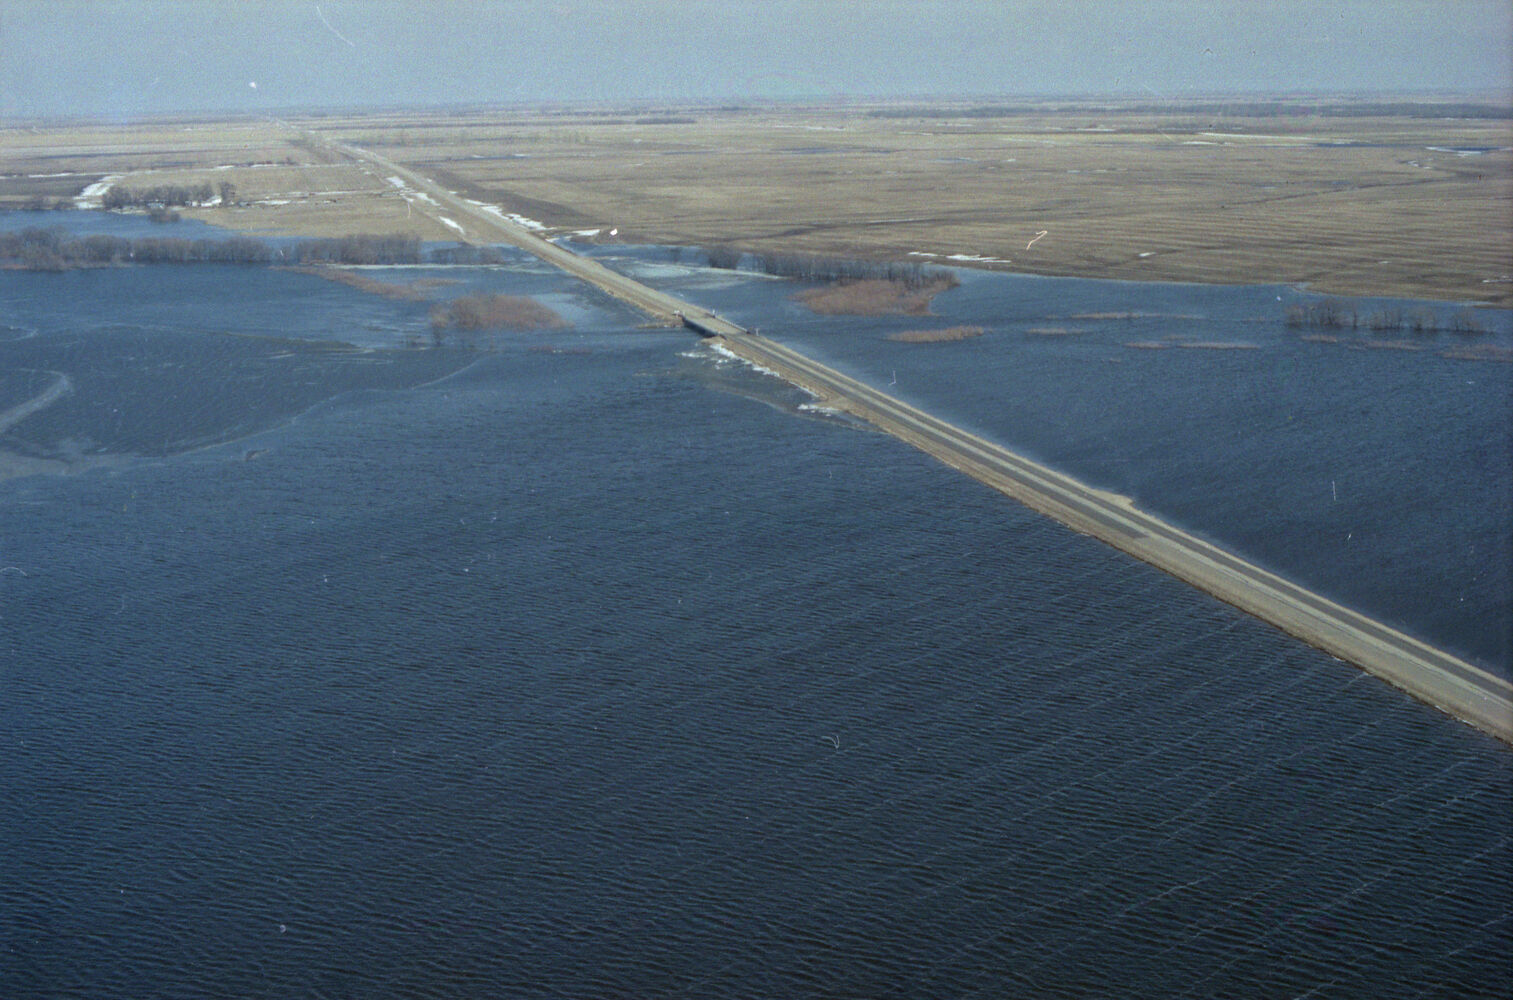 A bridge on the road shows where the river would normally by, in this view from the air taken during the 1995 spring floods in the Souris and Melita areas. (Dirk Aberson / Brandon Sun archives, April 12, 1995)